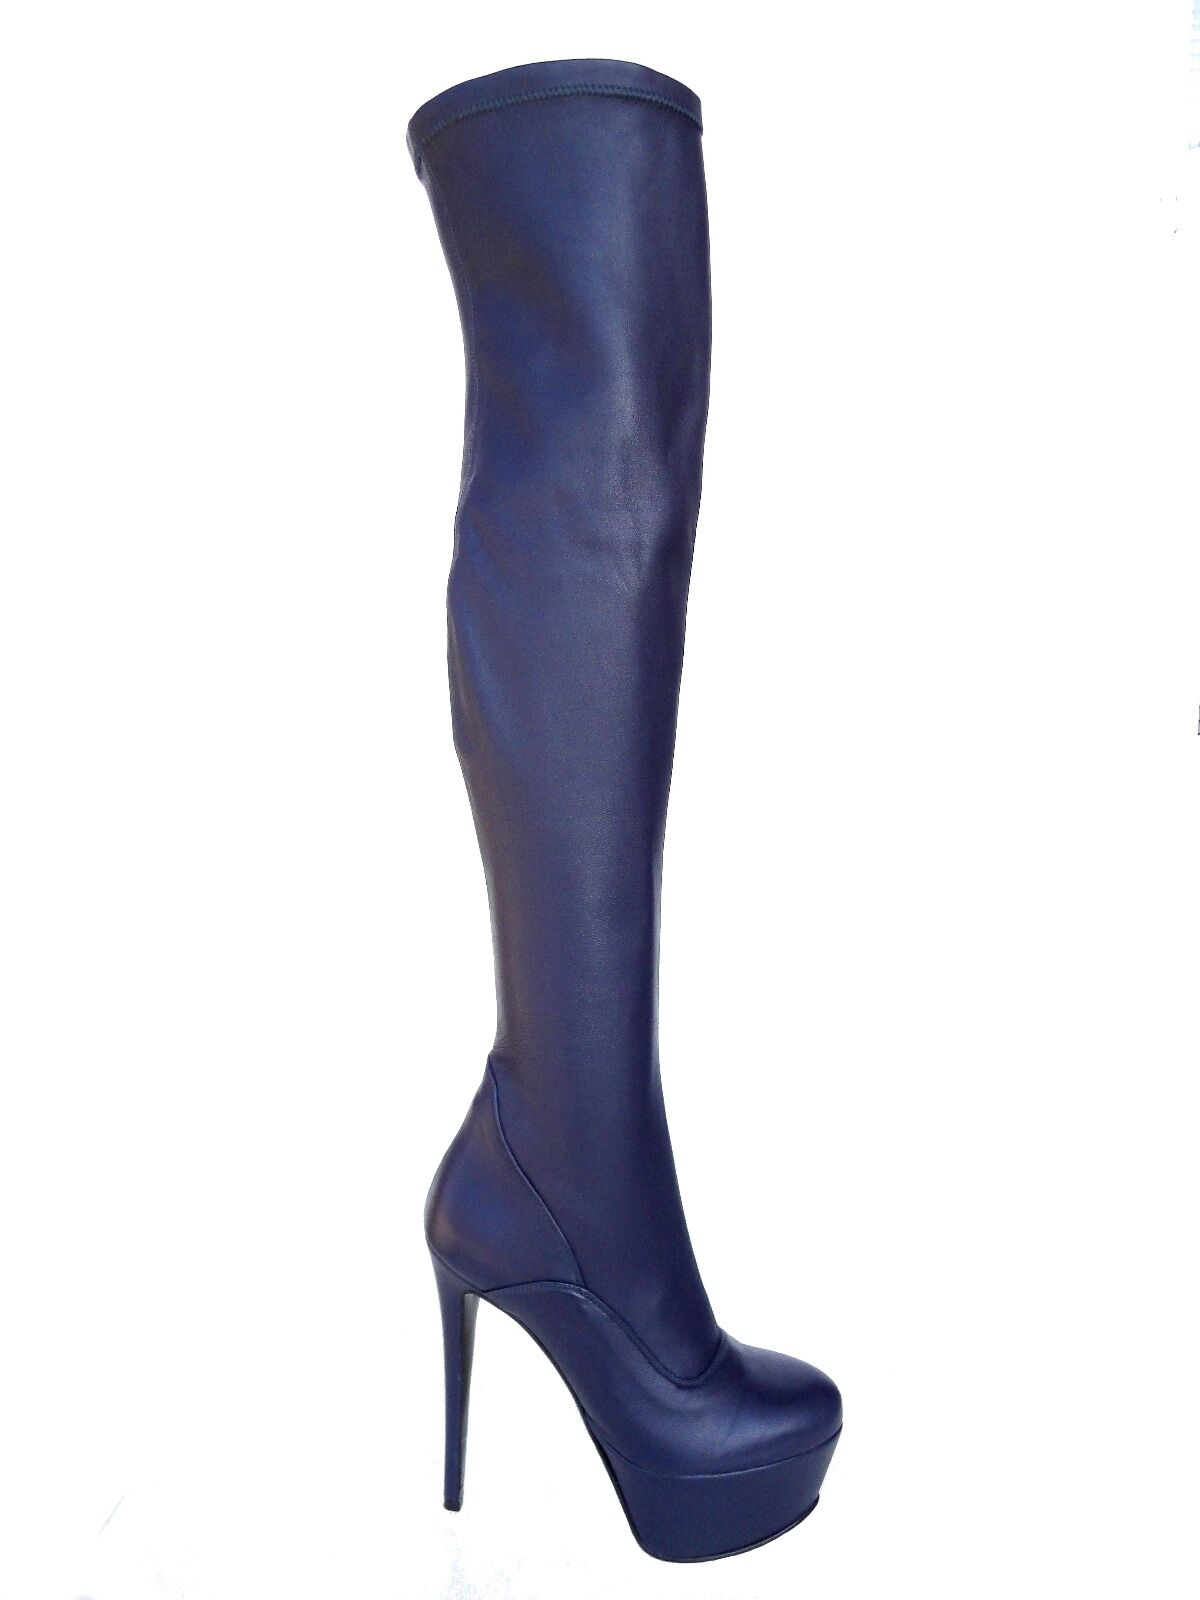 GIOHEL GIOHEL GIOHEL PLATFORM OVERKNEE HIGH HEELS bottes bottes BOTTES STRETCH CUIR BLEU 35 e774a3